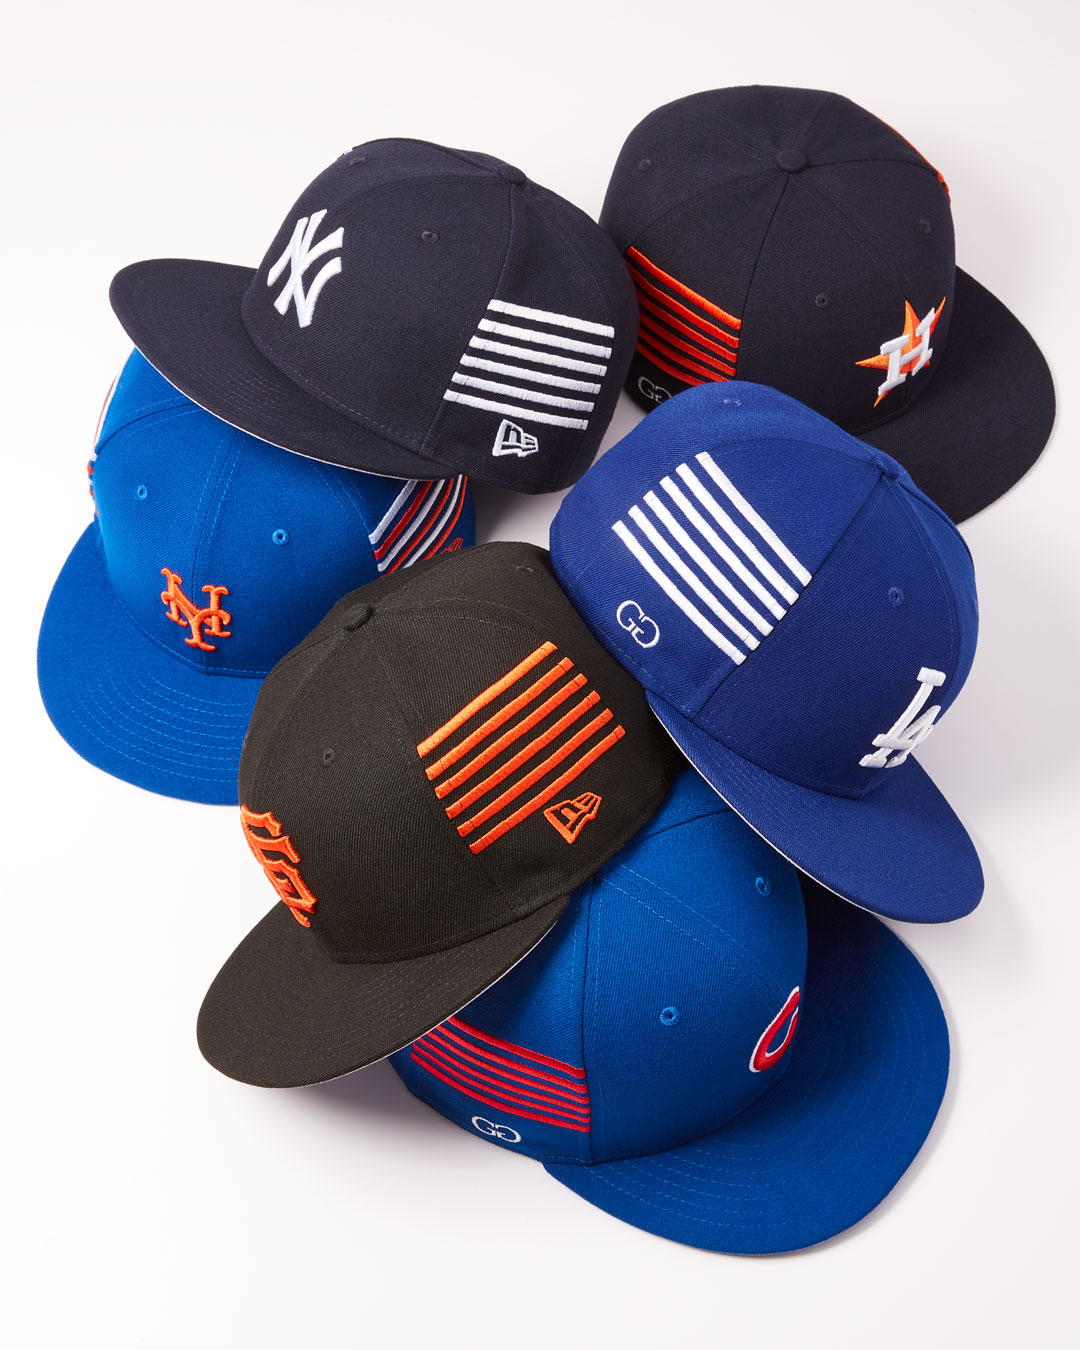 5b40e67cc3892 The Grungy Gentleman x New Era MLB Collection will only be sold in the  following 10 LIDS locations